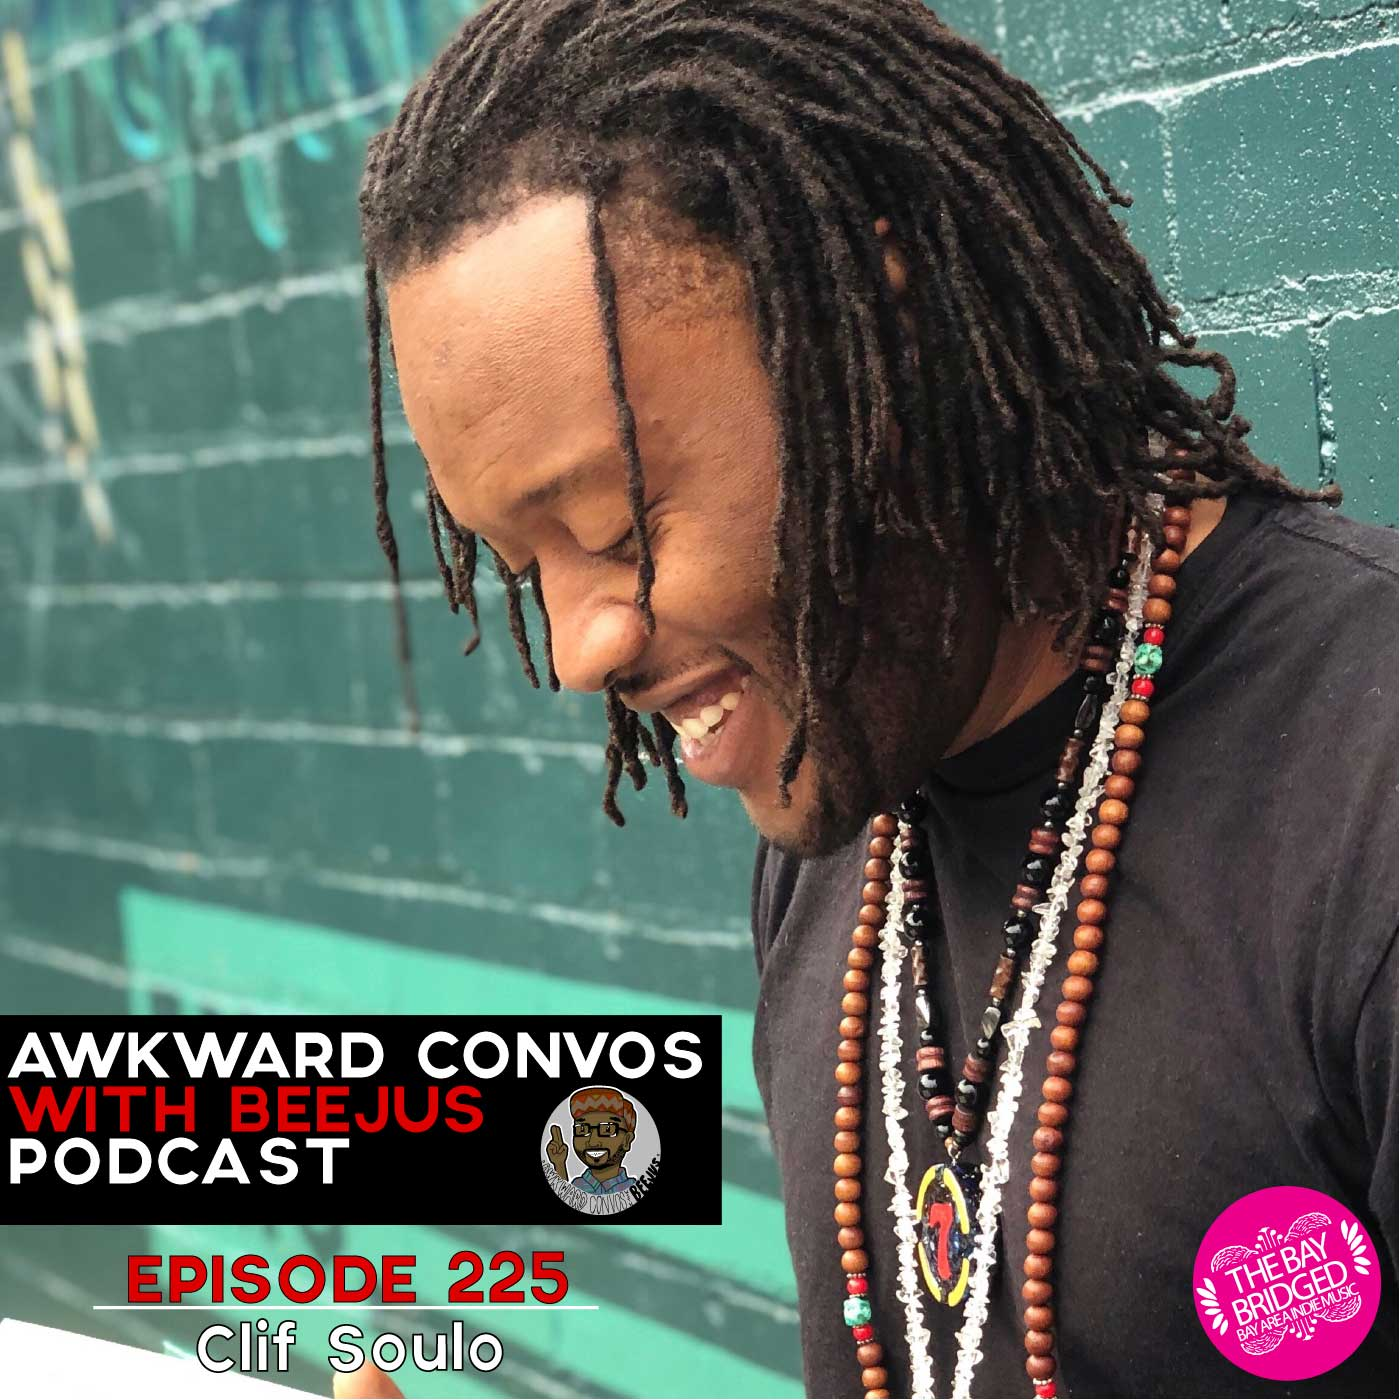 Awkward Convos: Clif Soulo